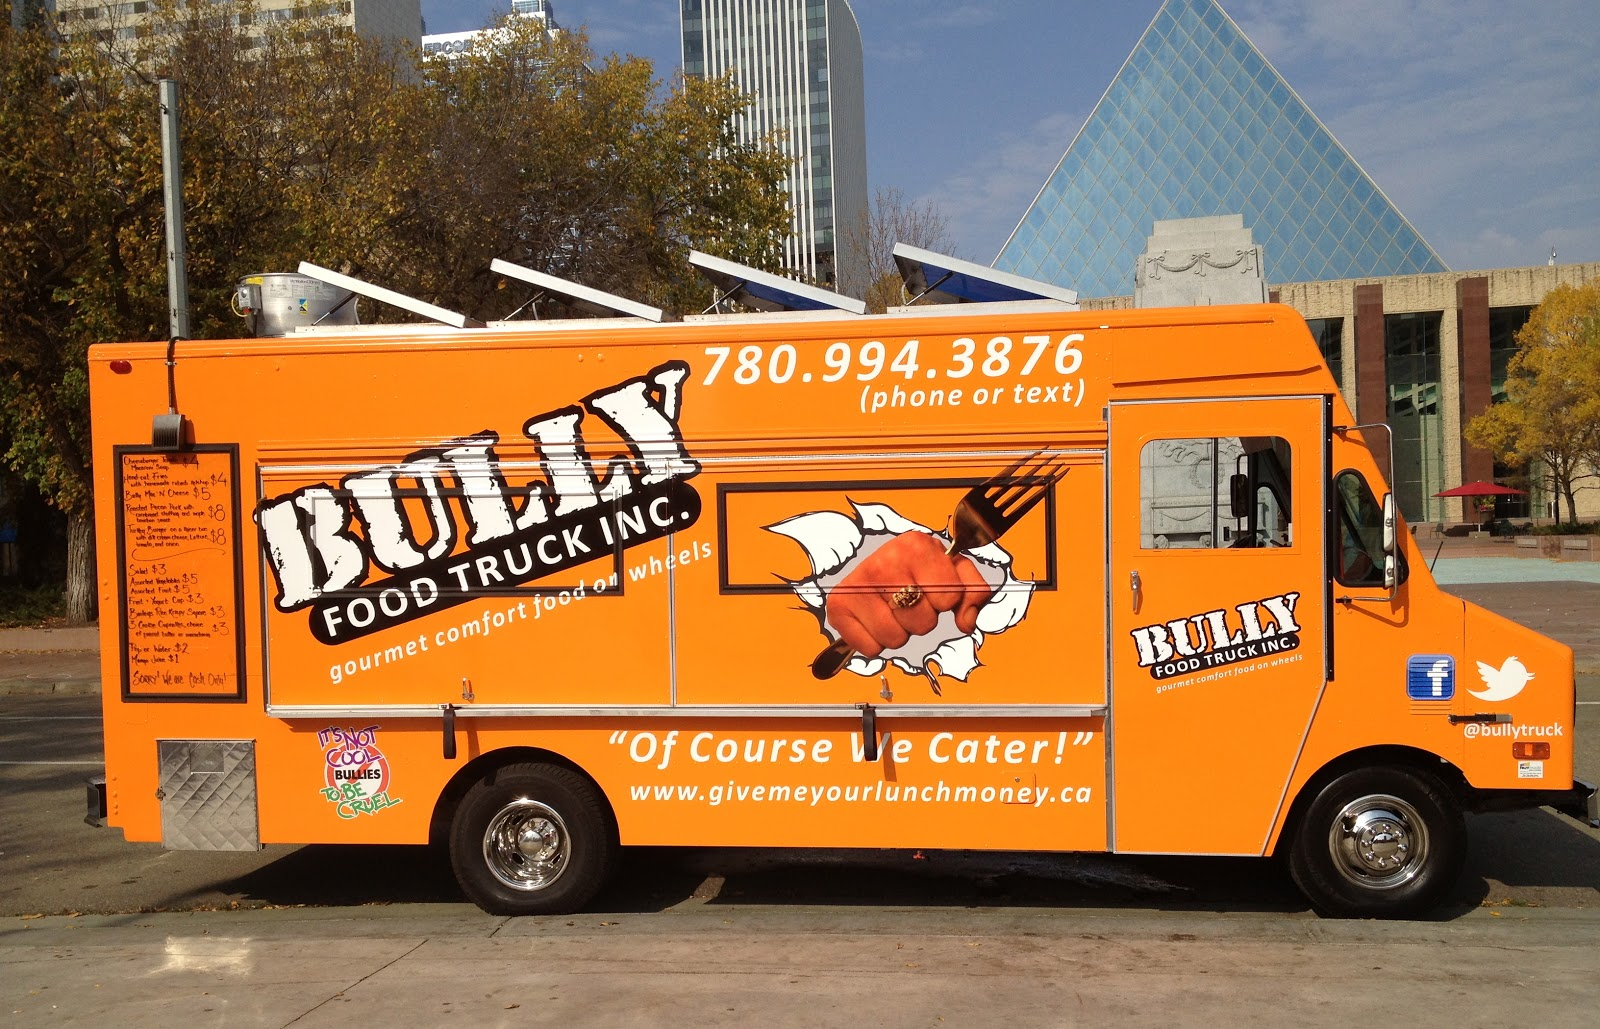 Bully Food Truck Location